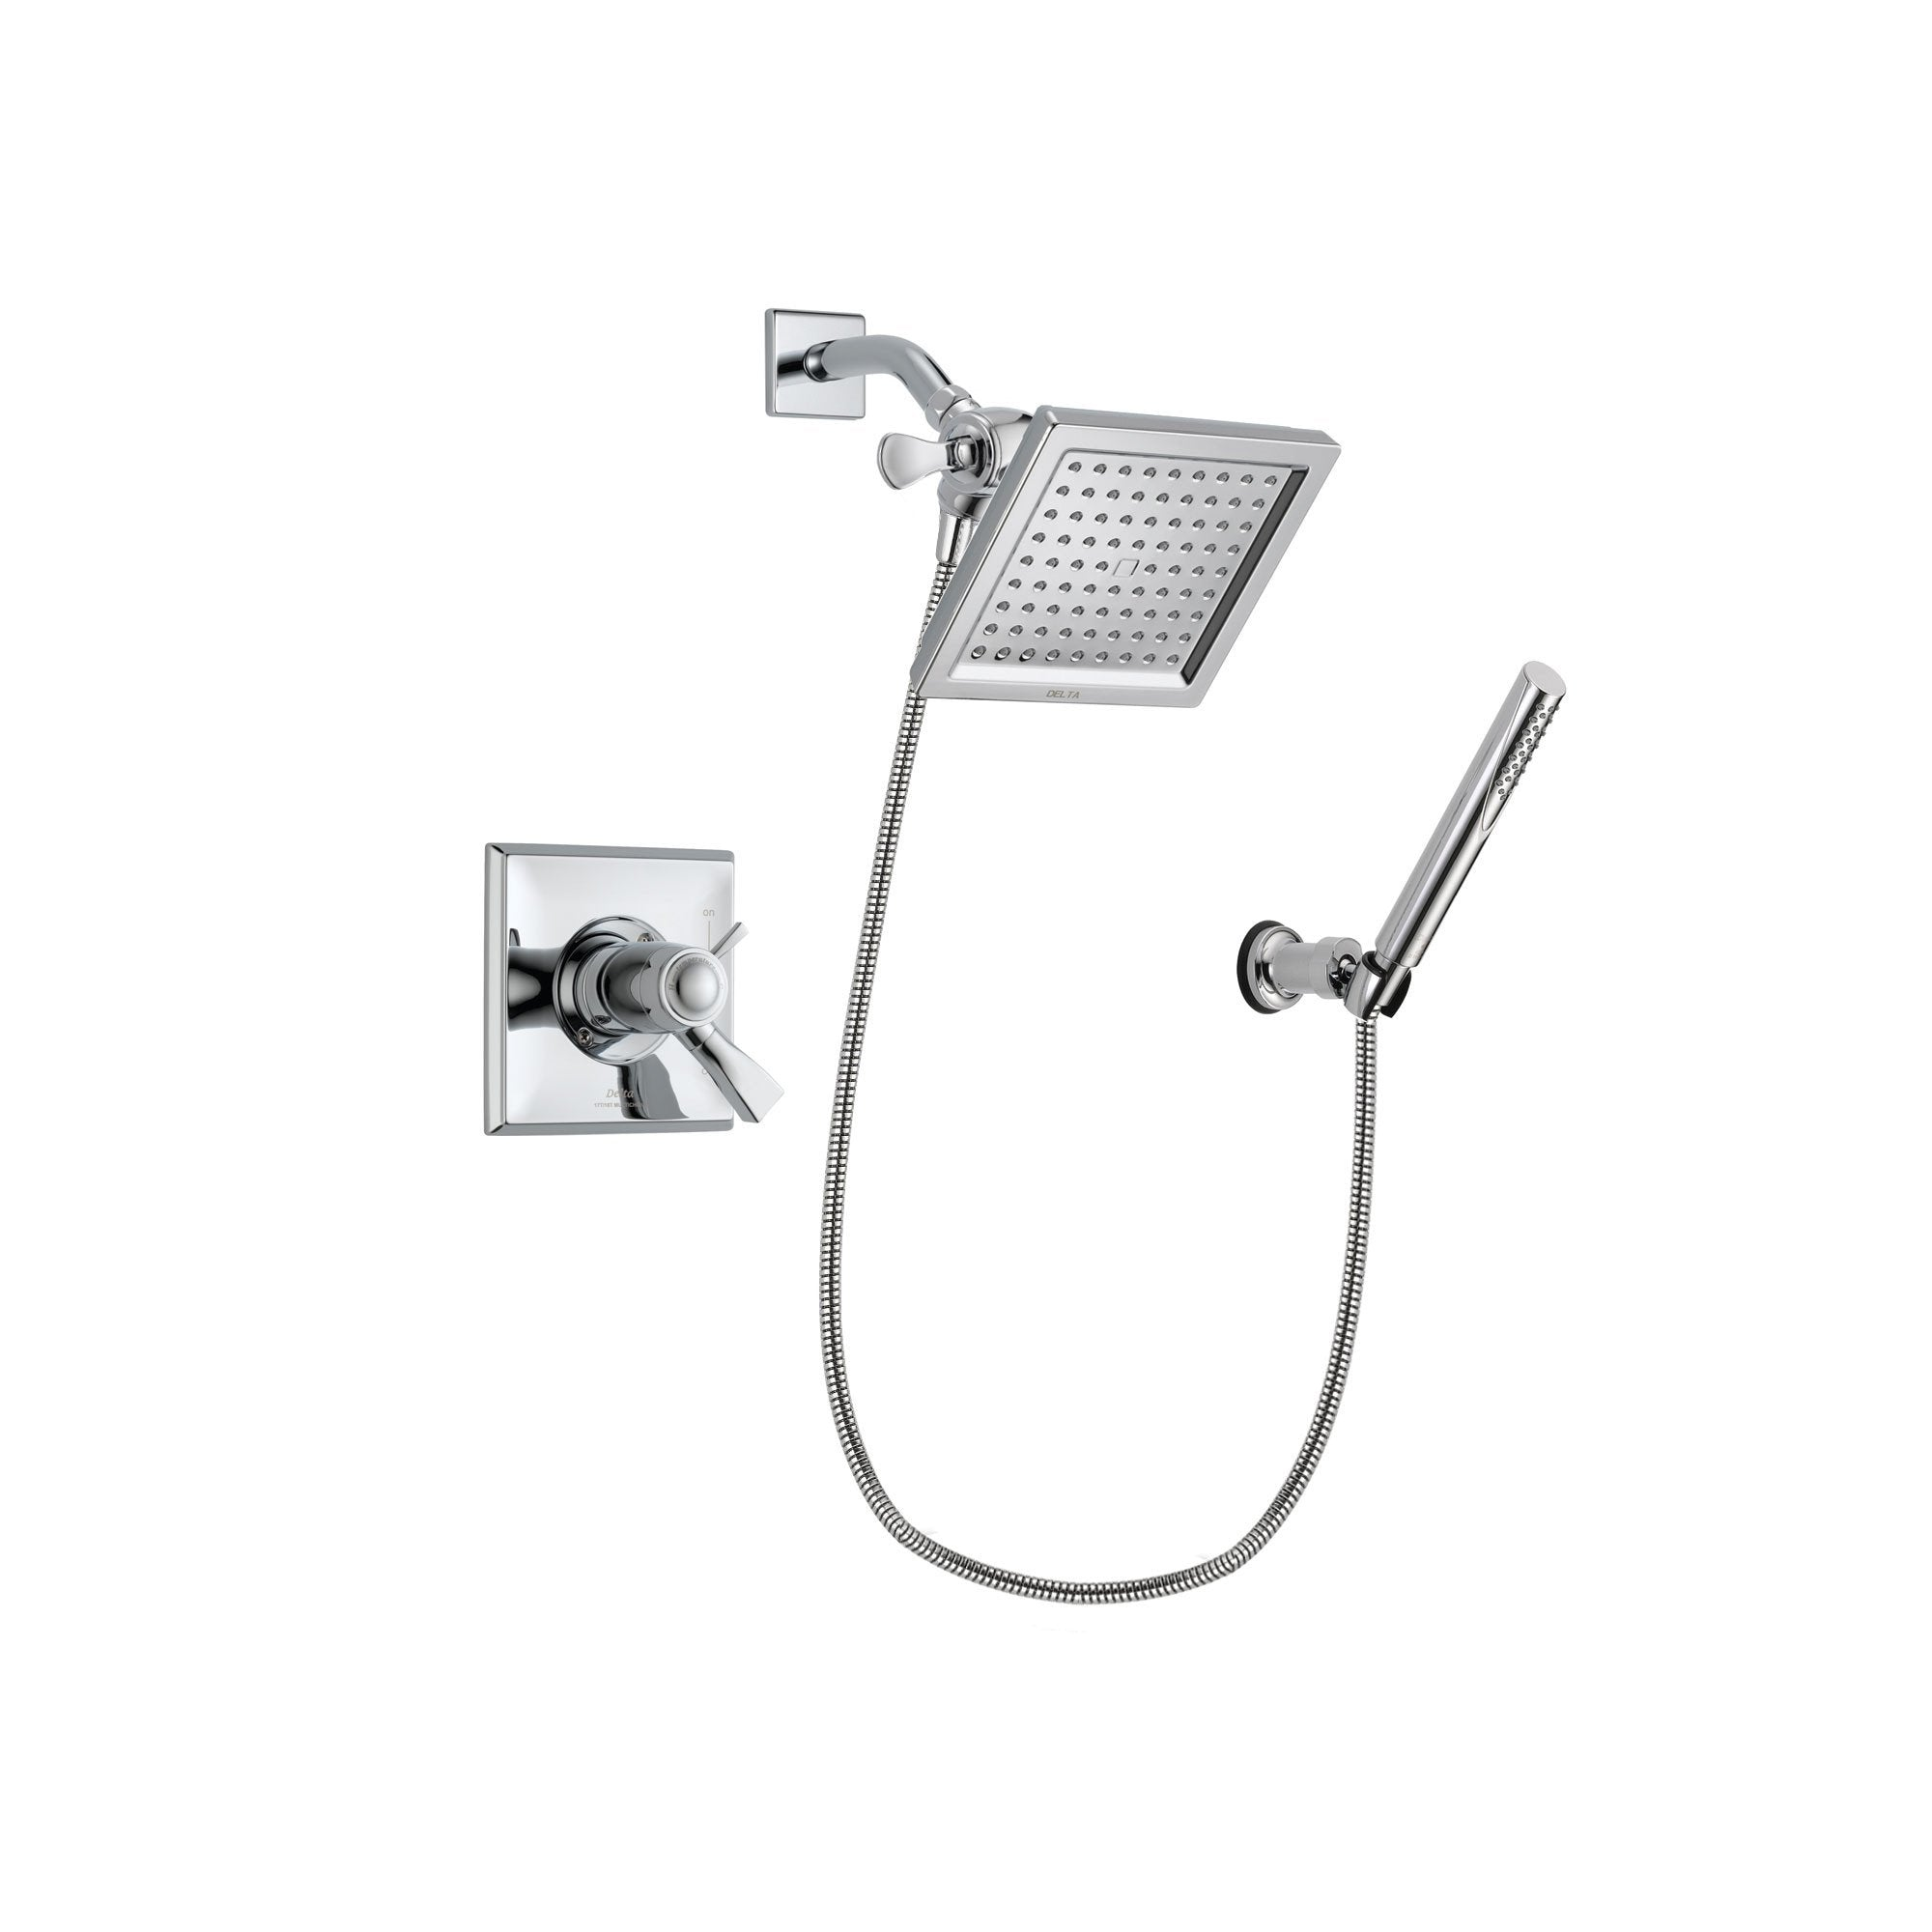 Delta Dryden Chrome Shower Faucet System w/ Shower Head and Hand Shower DSP0065V